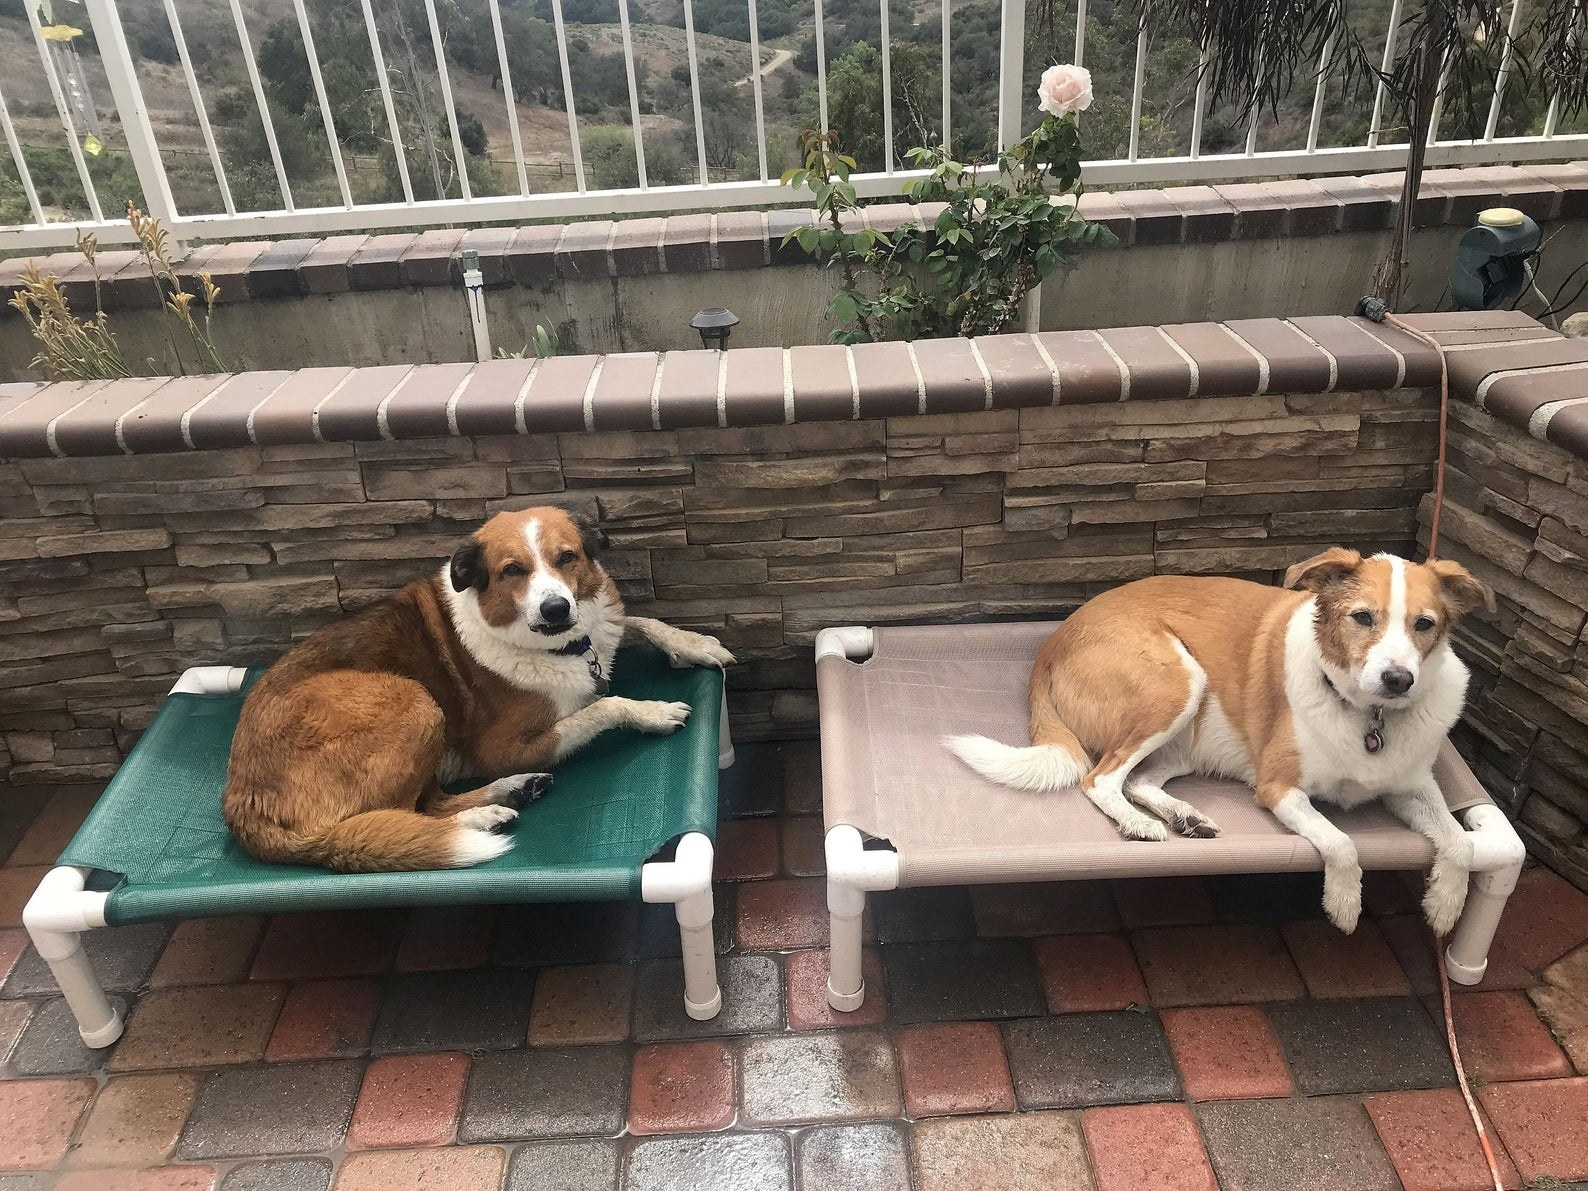 two dogs sitting on elevated dog beds on a patio